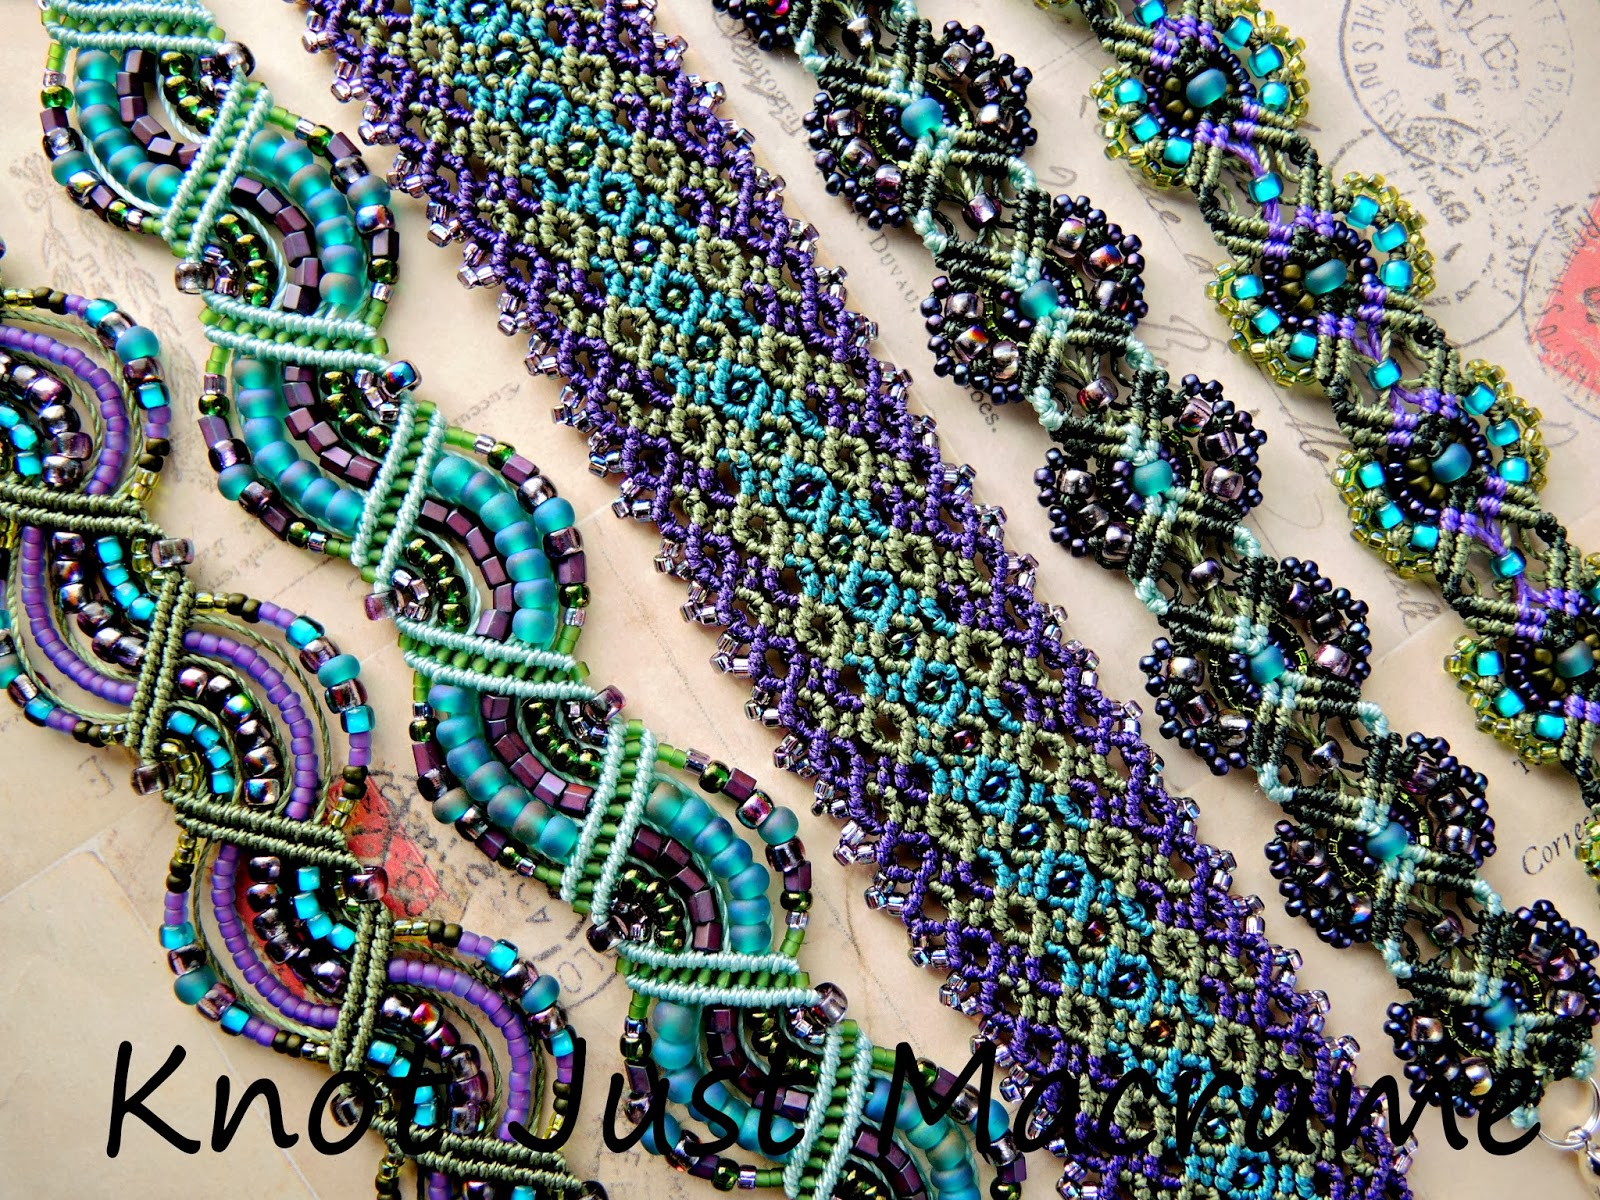 Micro macrame bracelets knotted in olive green, teal and purple.